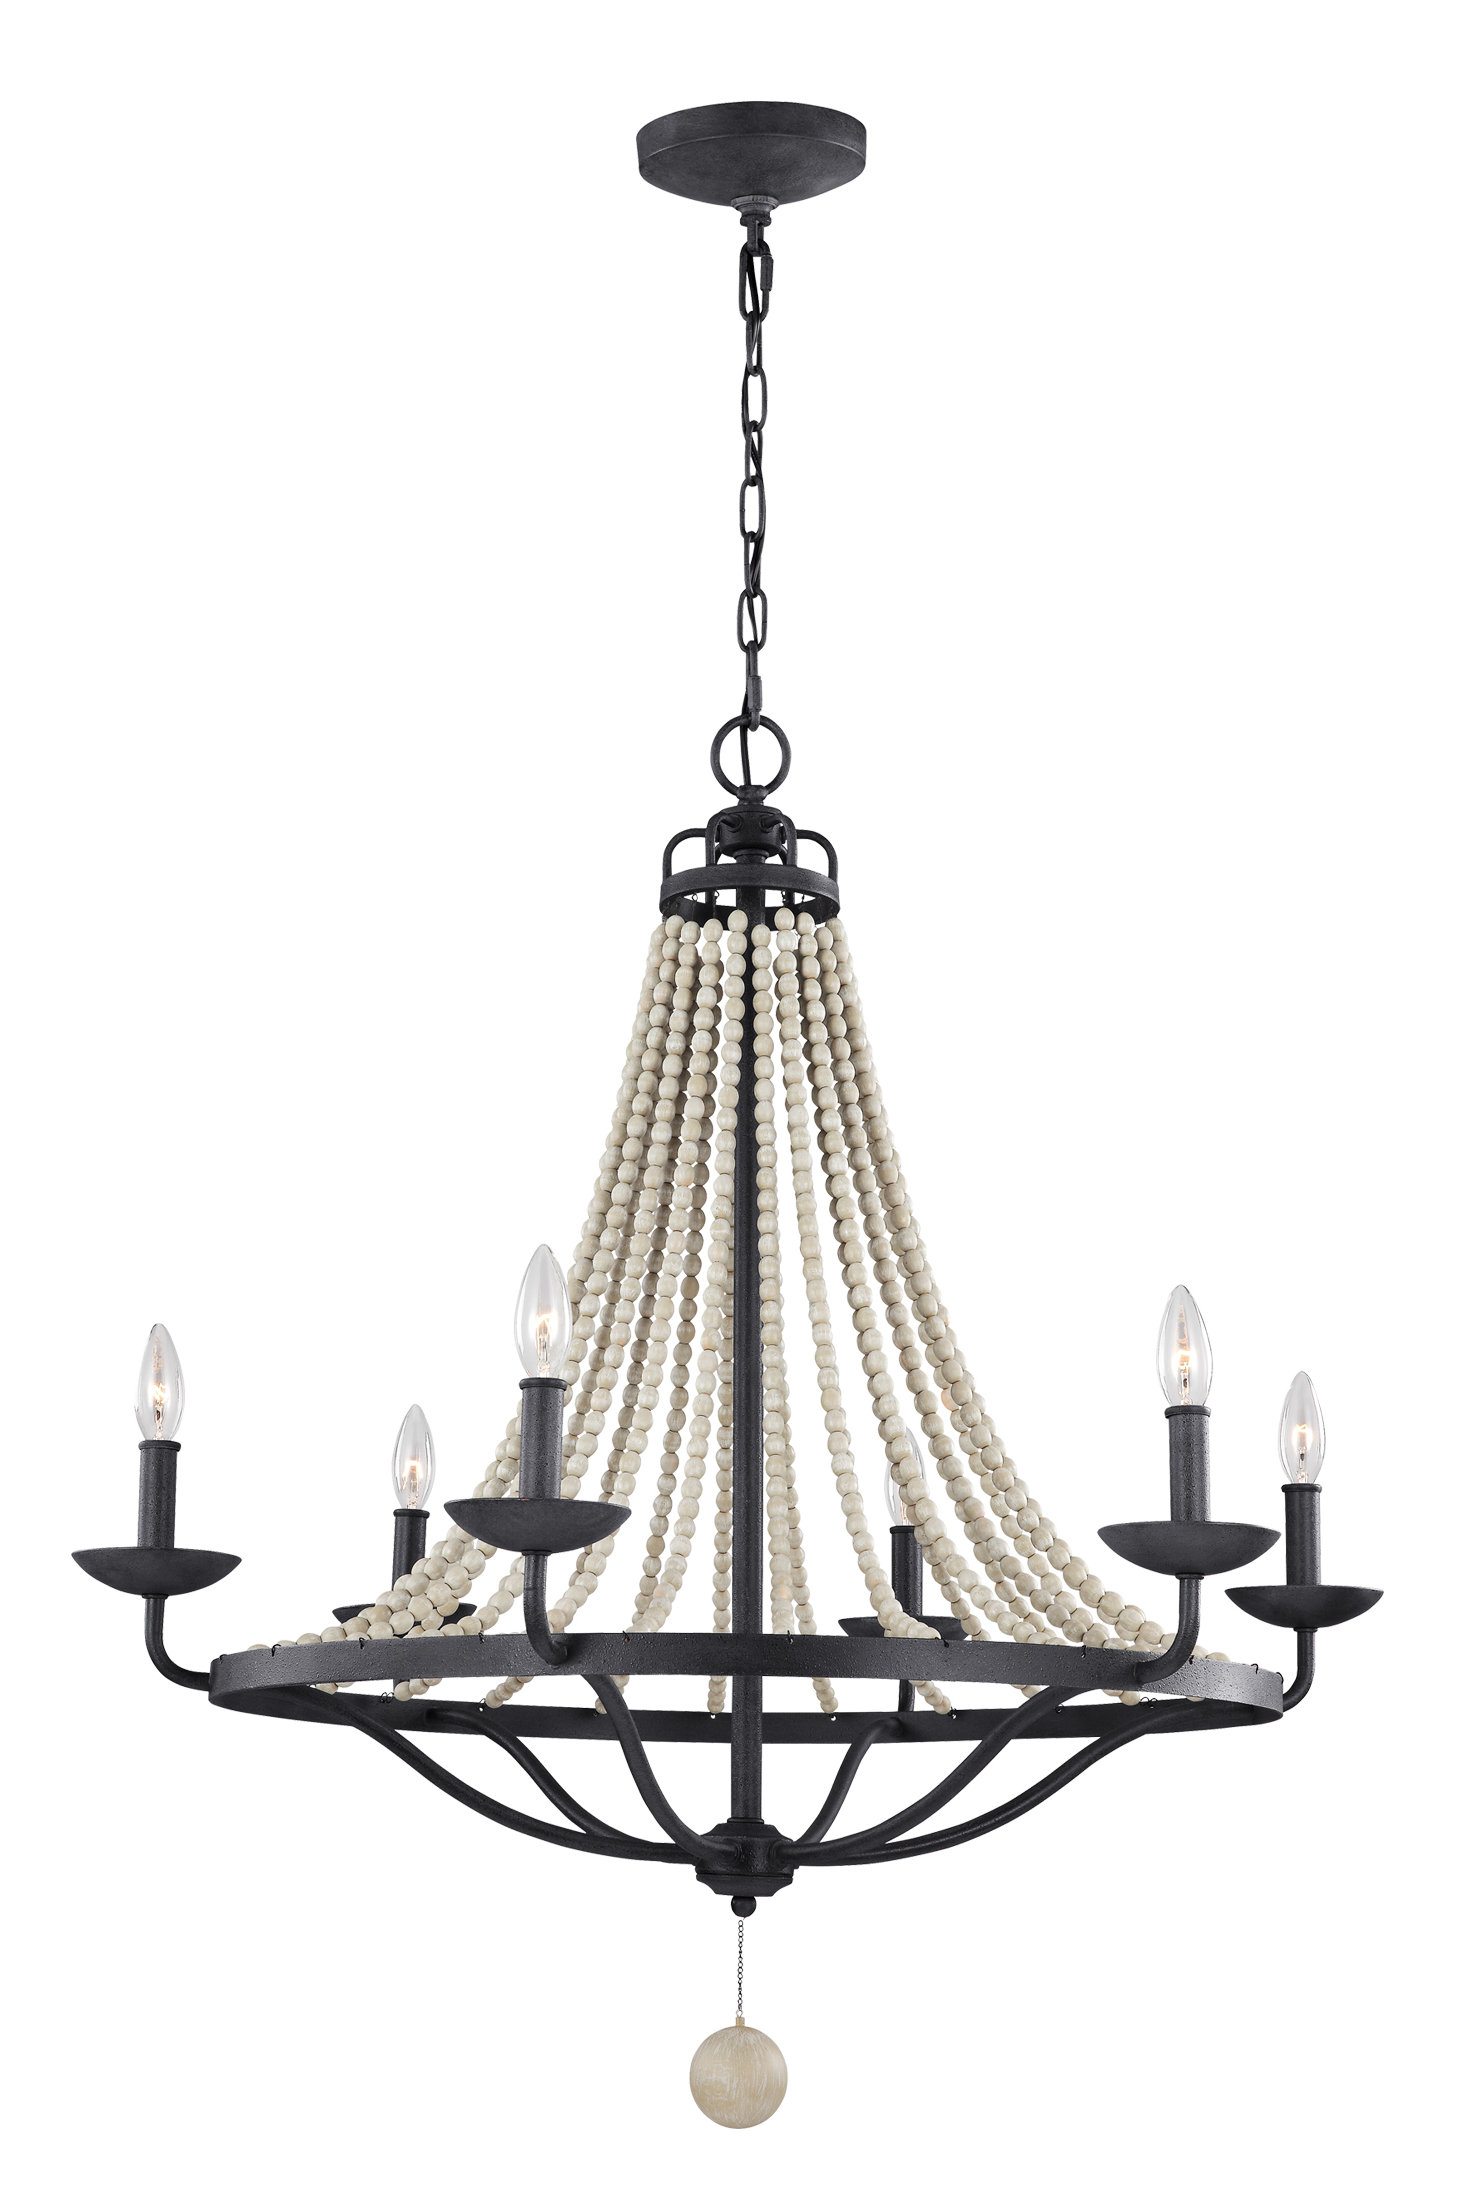 Diaz 6 Light Candle Style Chandeliers Intended For Favorite Granger 6 Light Empire Chandelier (View 8 of 25)